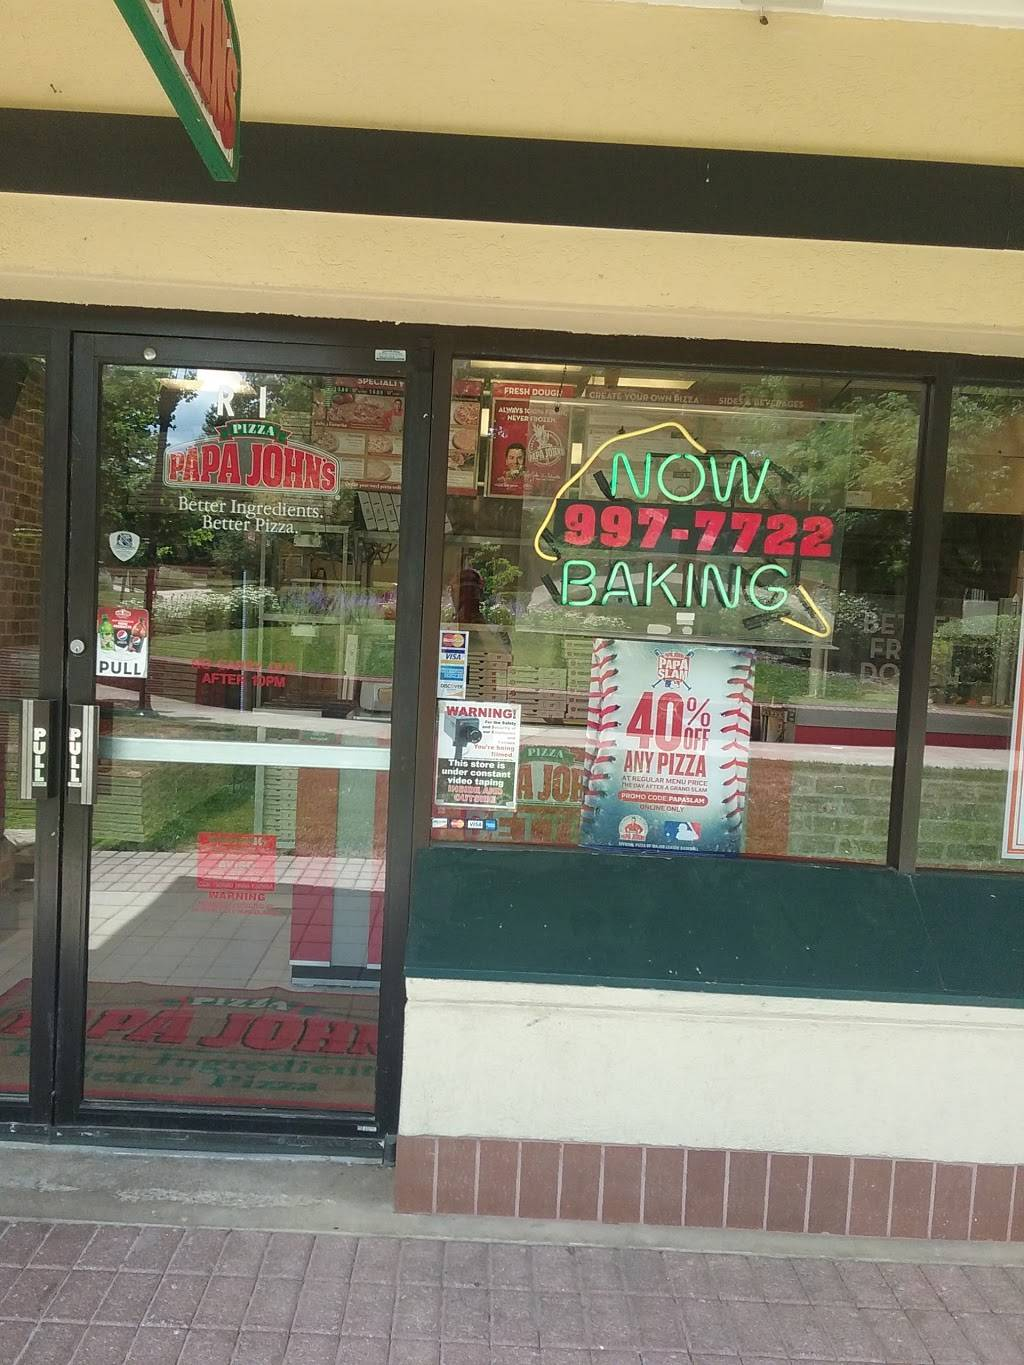 Papa Johns Pizza   restaurant   5485 Harpers Farm Rd, Columbia, MD 21044, USA   4109977722 OR +1 410-997-7722